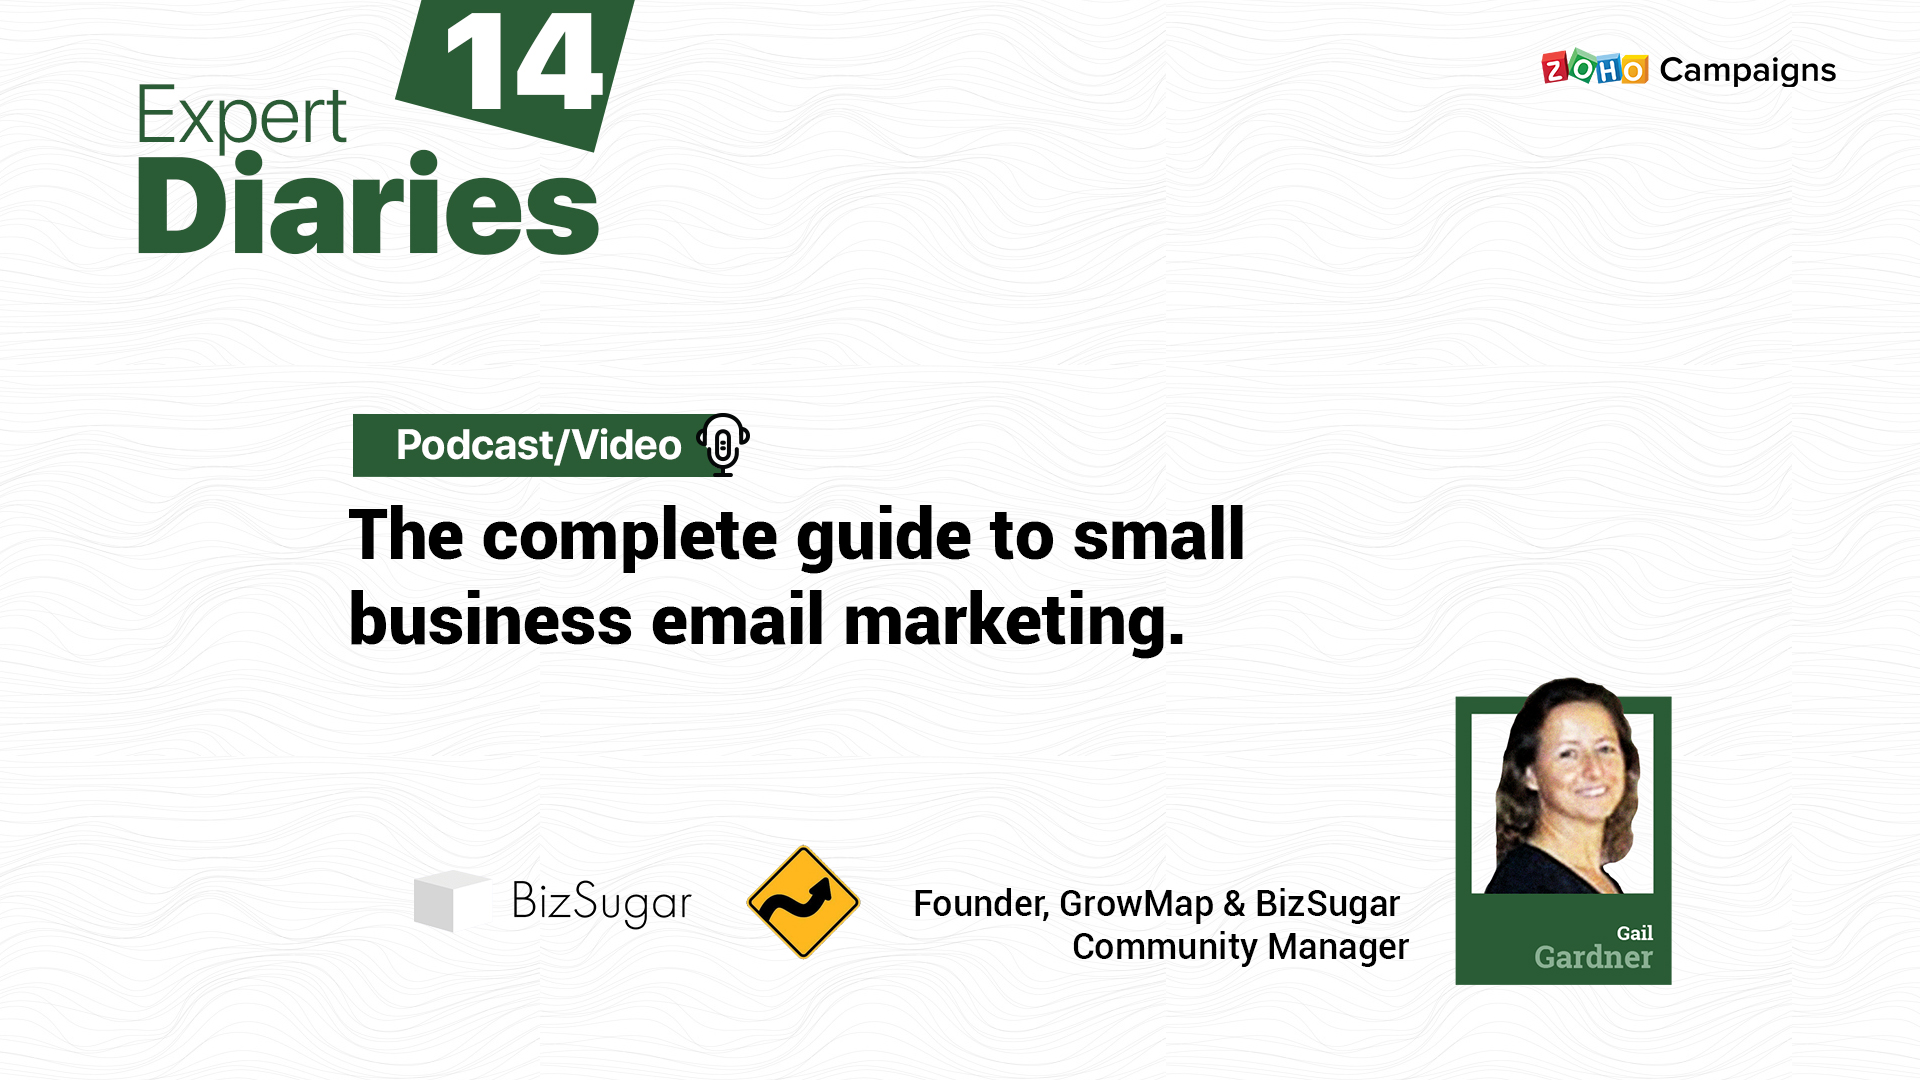 The complete guide to small business email marketing